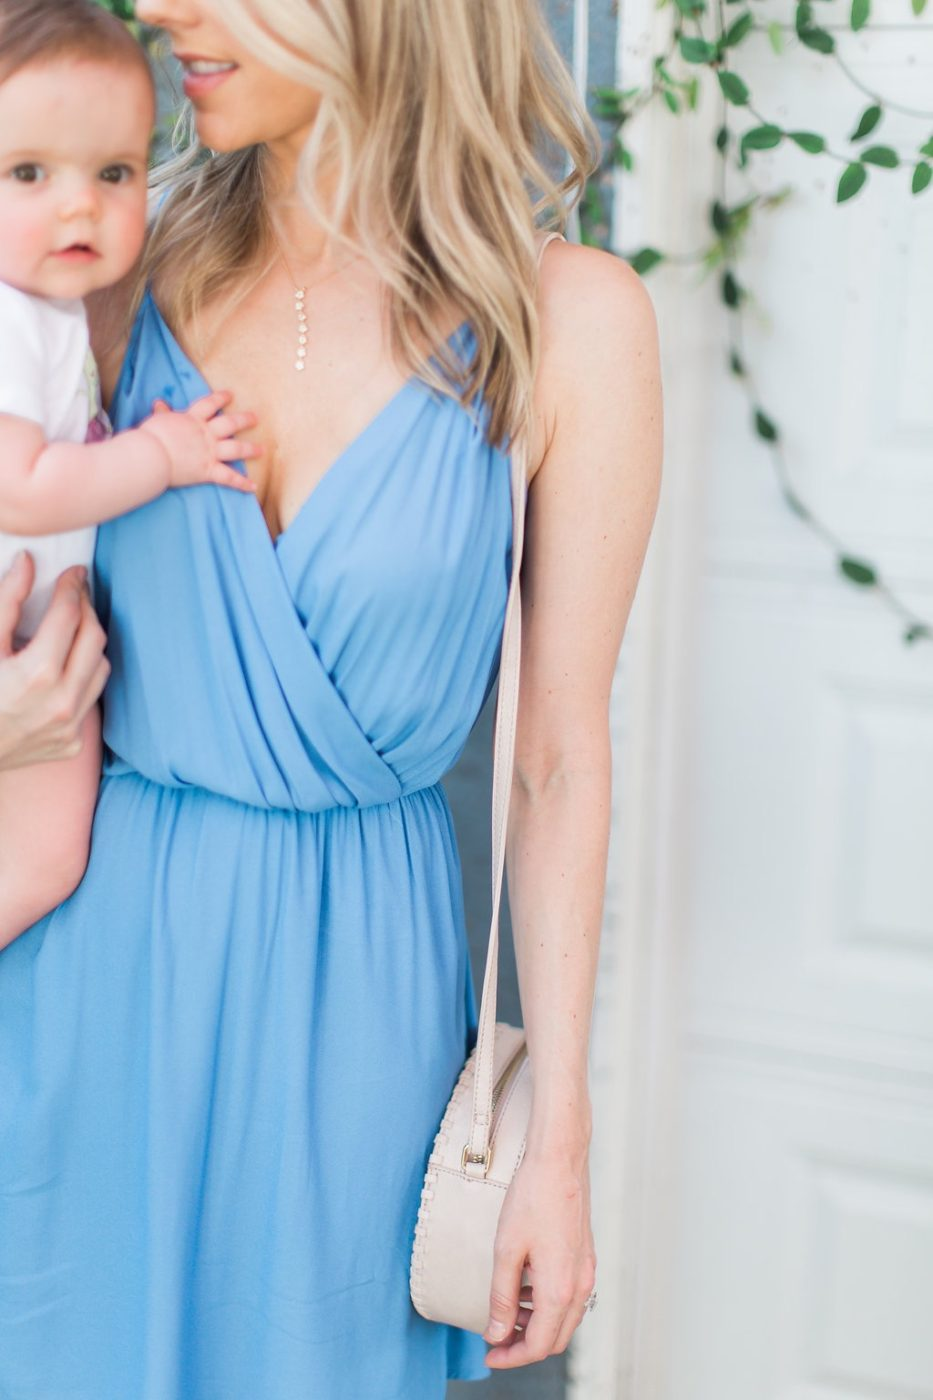 Affordable Dress for Only $26 – Feeling Pretty in Light Blue